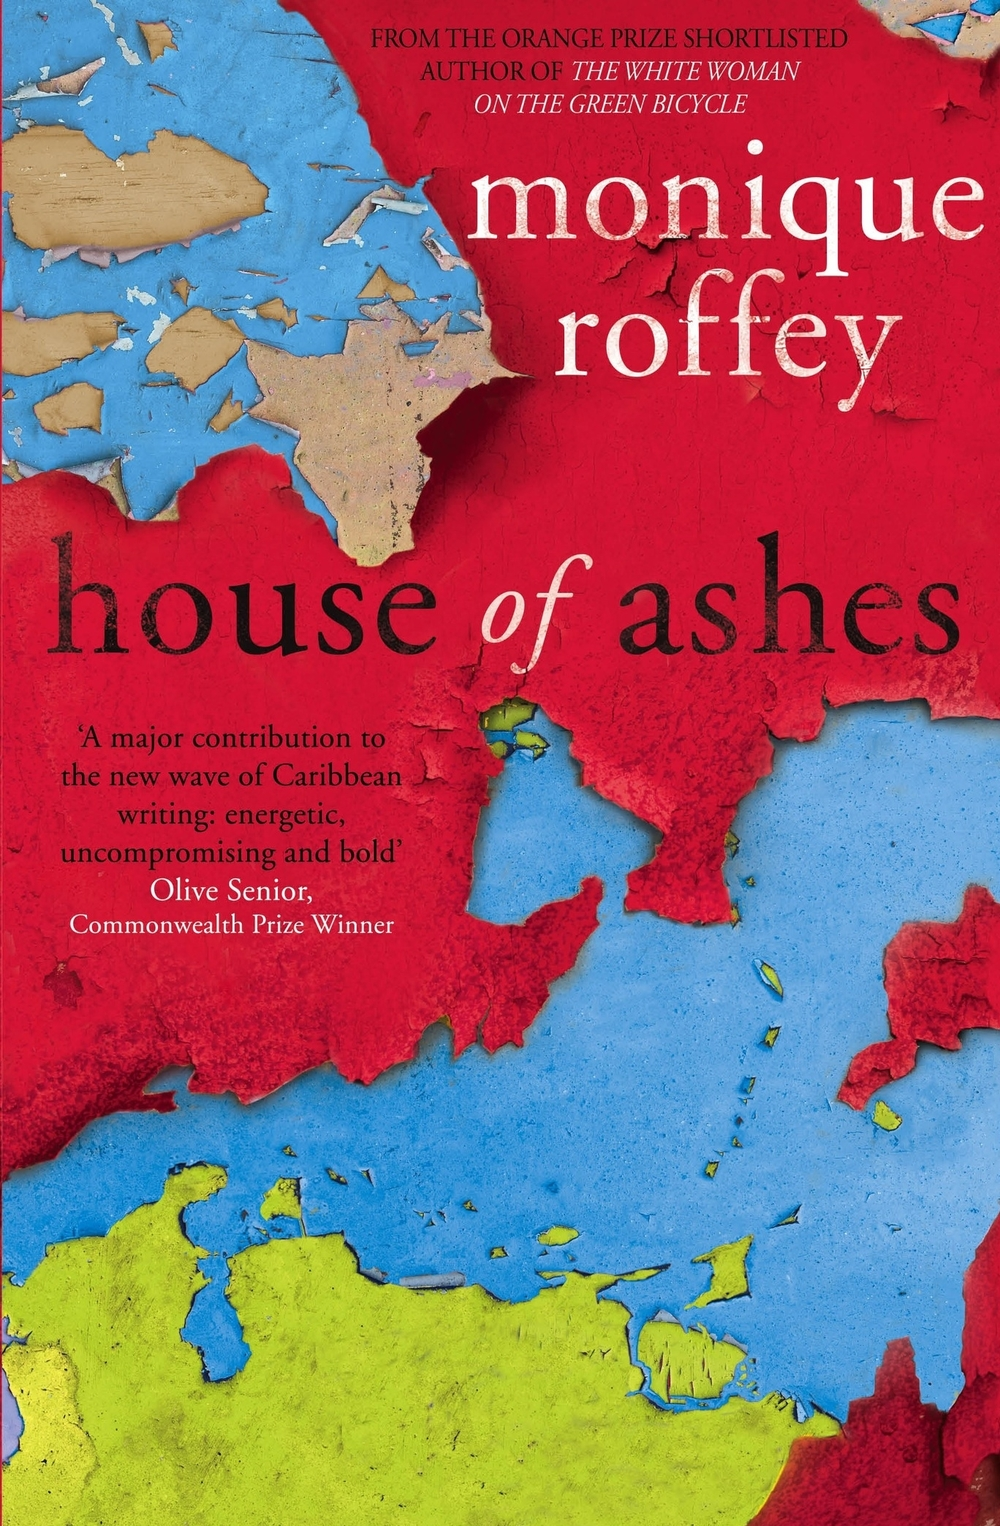 HOUSE OF ASHES Literary fiction, 368 pages Simon & Schuster - July 2014  The haunting story of Ashes and Breeze, two disaffected young men on a Caribbean island who follow a charismatic leader into a disastrous coup.